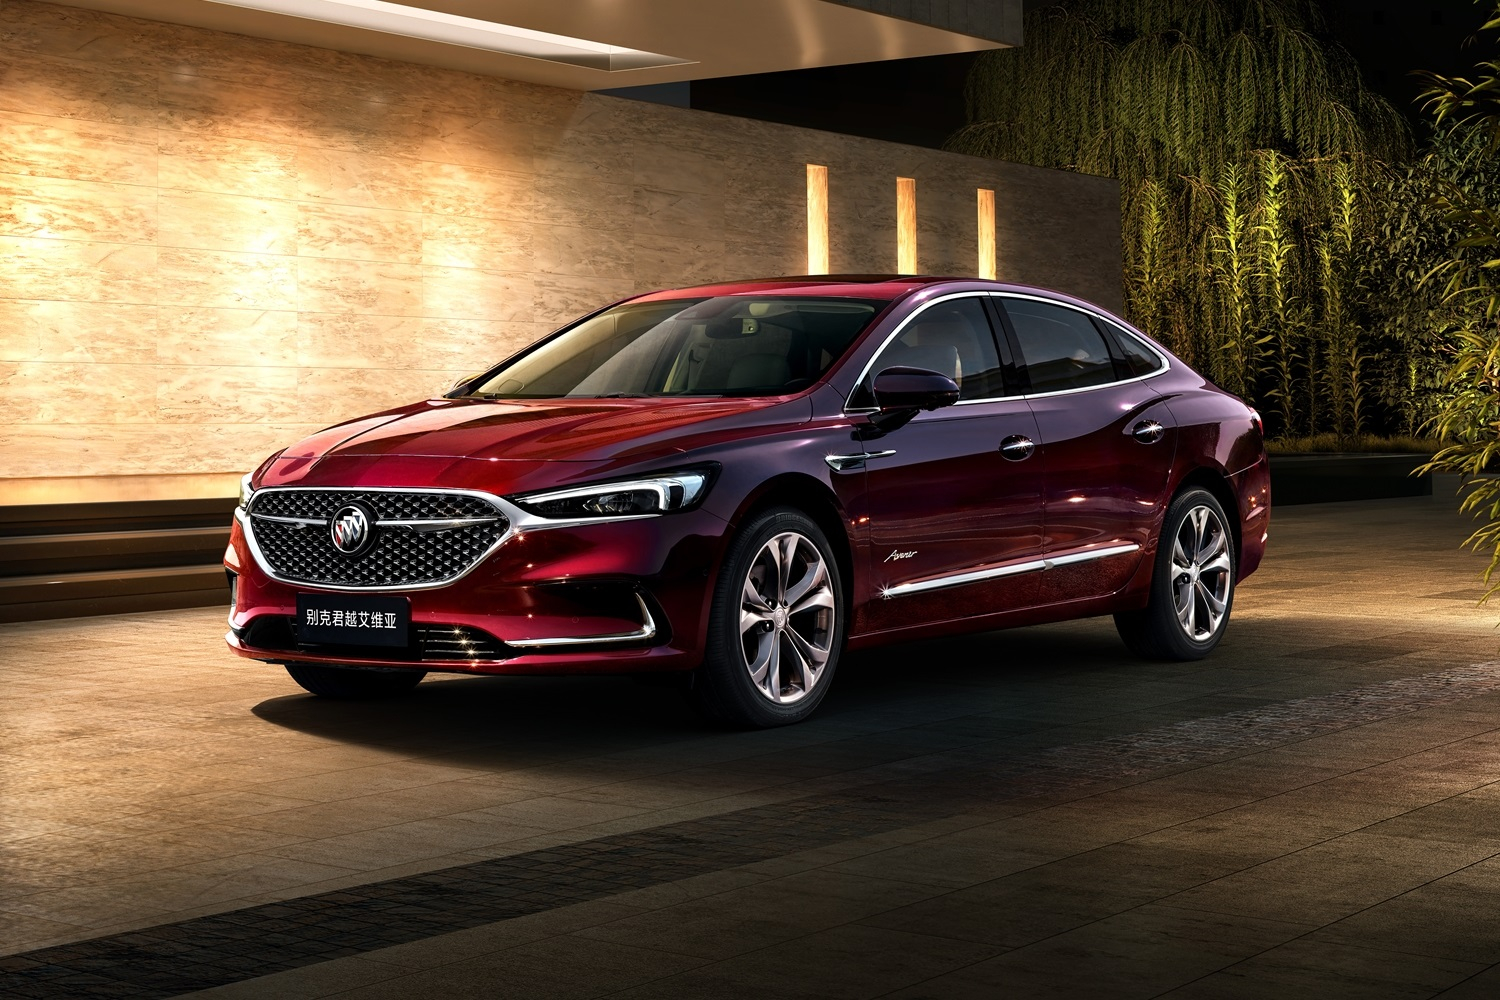 2021 Buick Lacrosse Gets More Refined Than Ever | Gm Authority New 2021 Buick Lucerne Mpg, Seat Covers, Specs